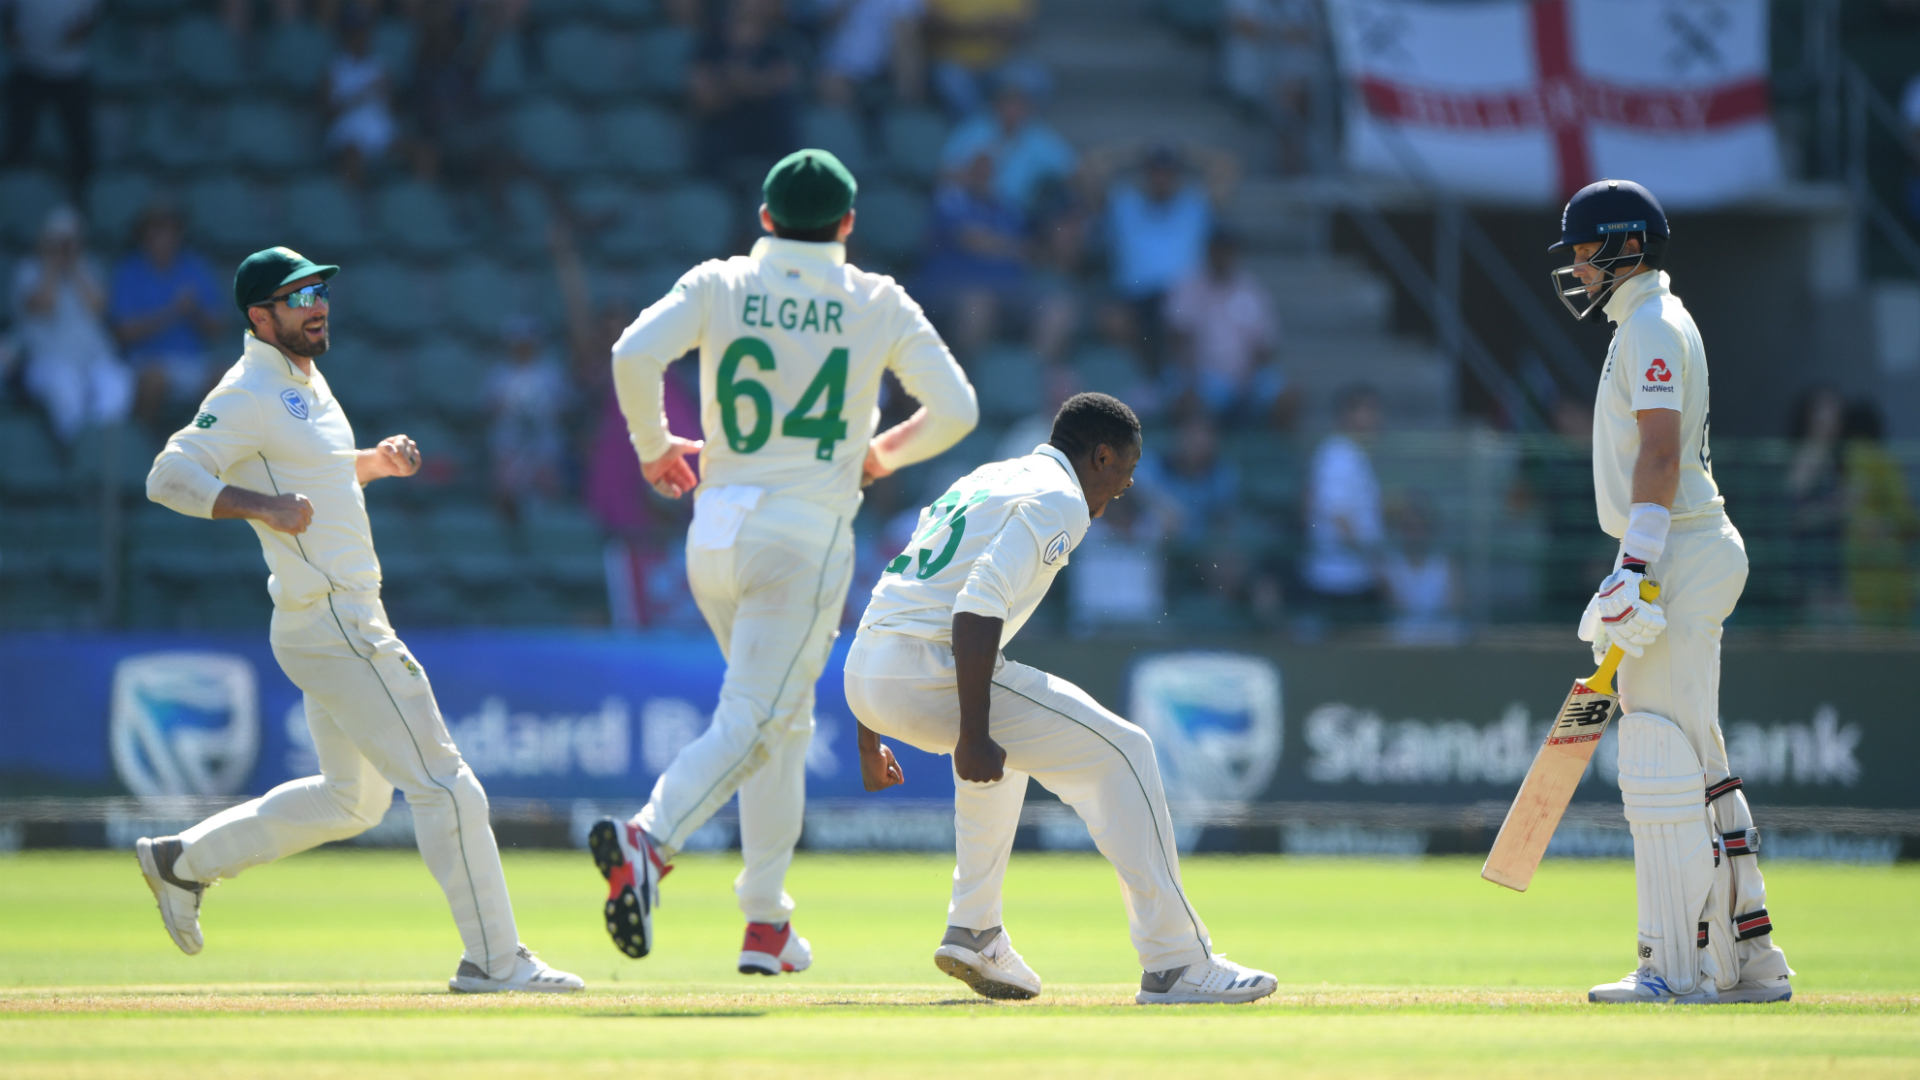 I'm letting the team and myself down - Rabada vows to keep emotions in check